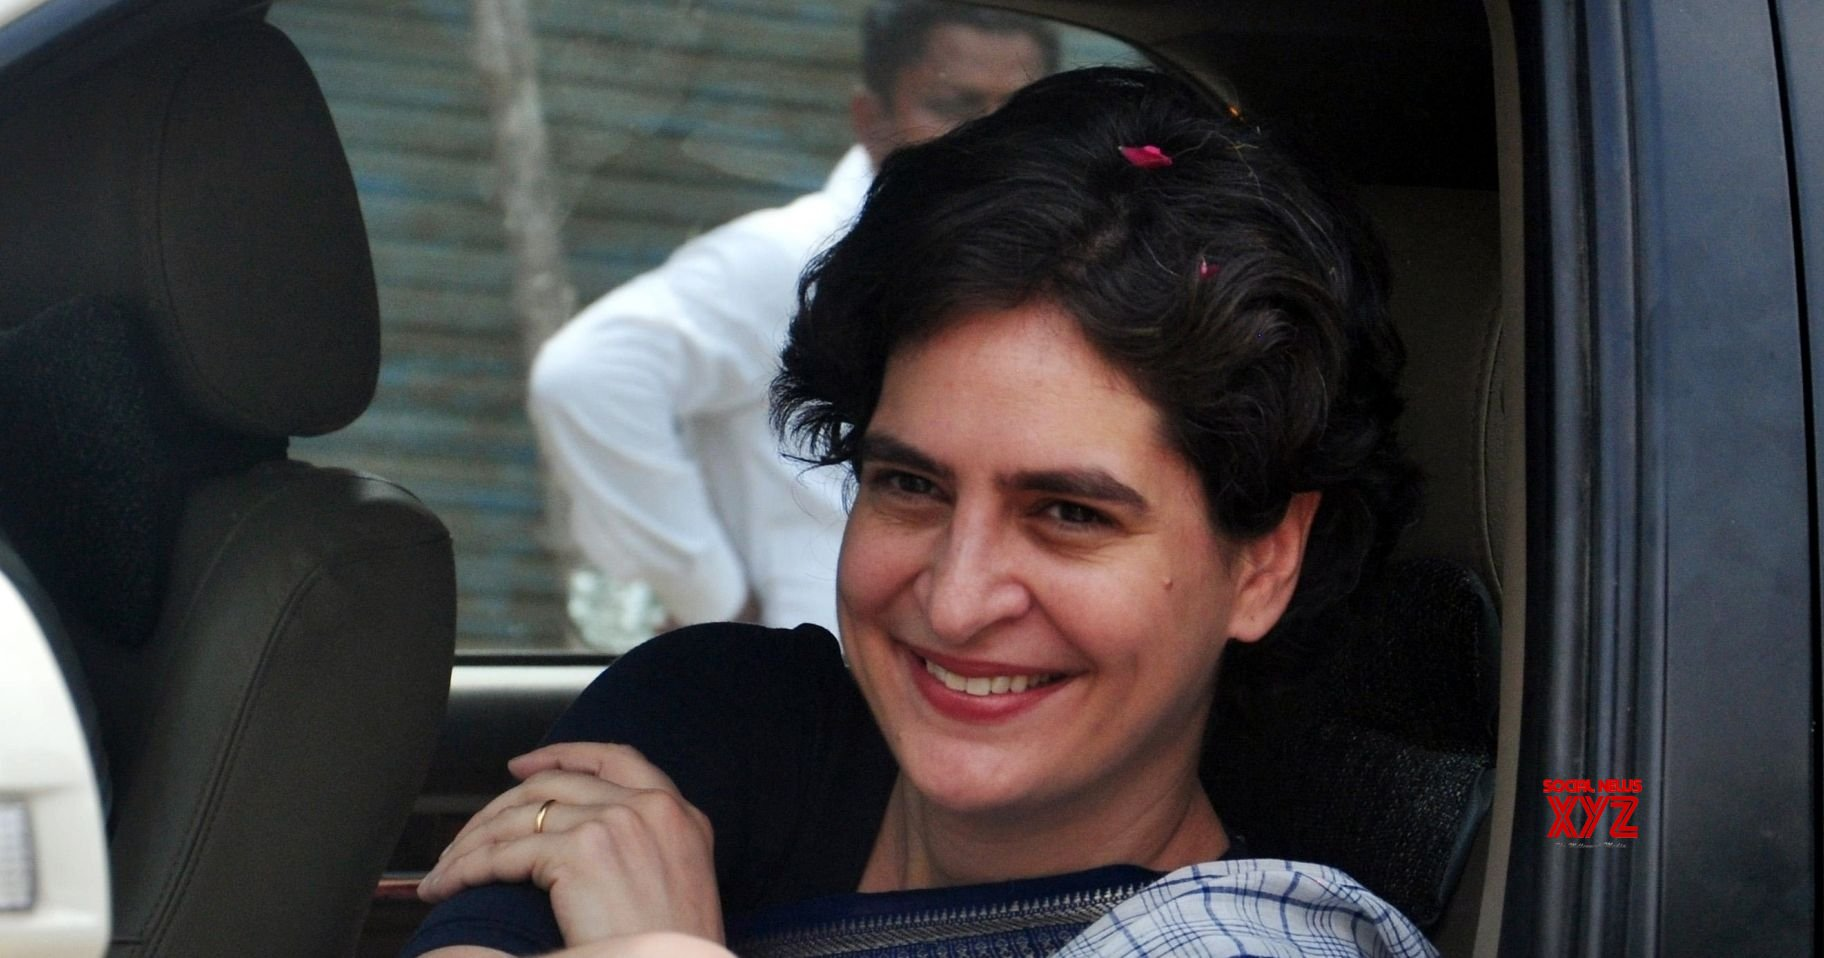 Priyanka Gandhi in Lucknow to meet party workers